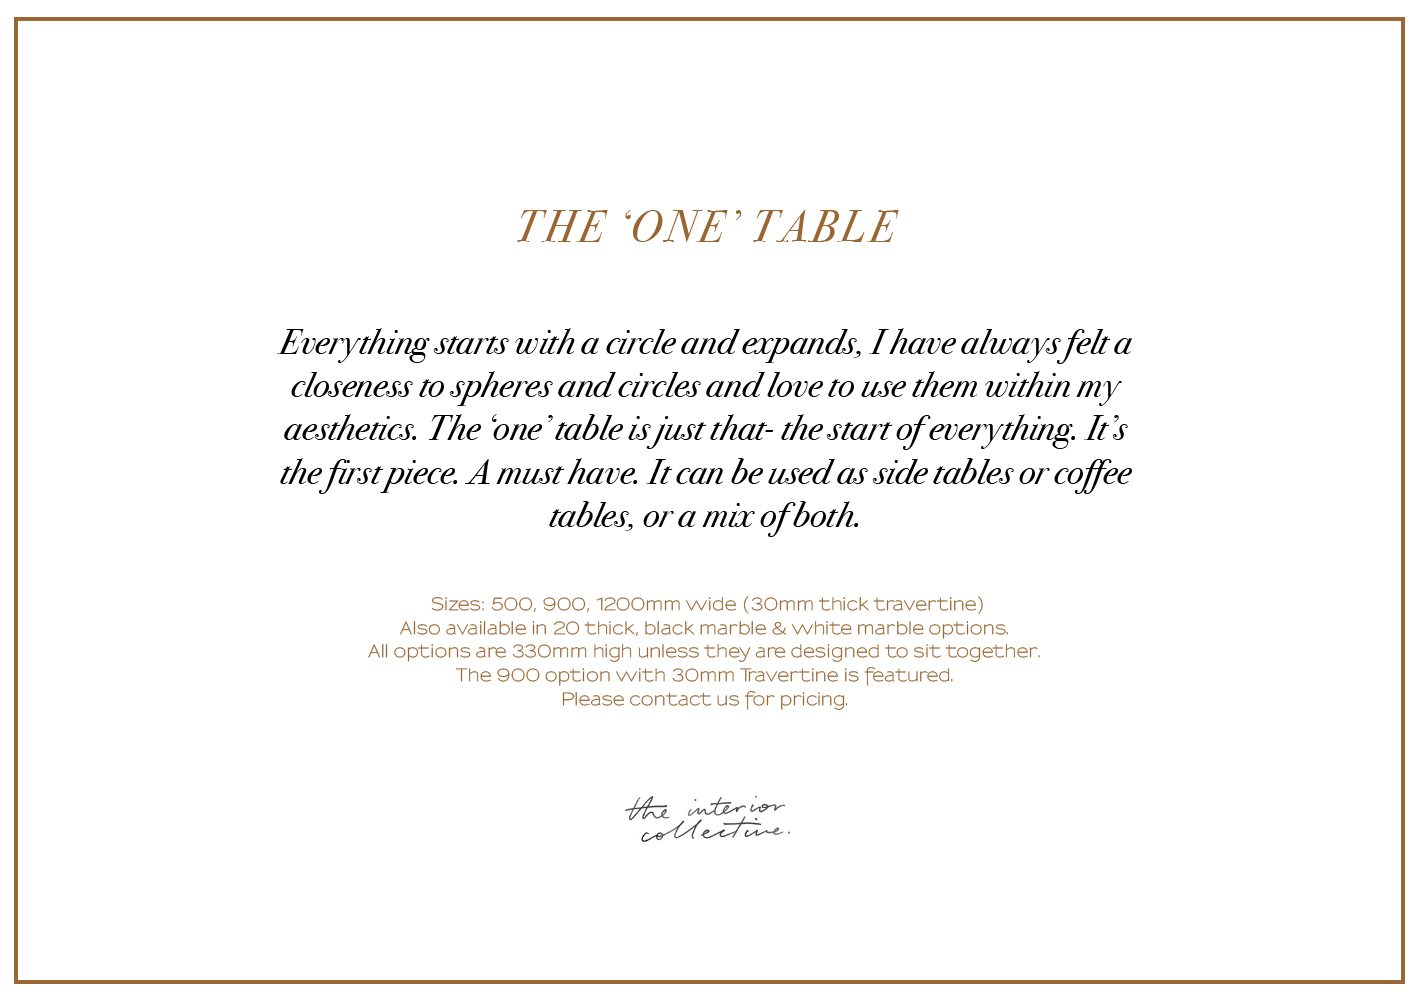 THE-ONE-TABLE_INFO